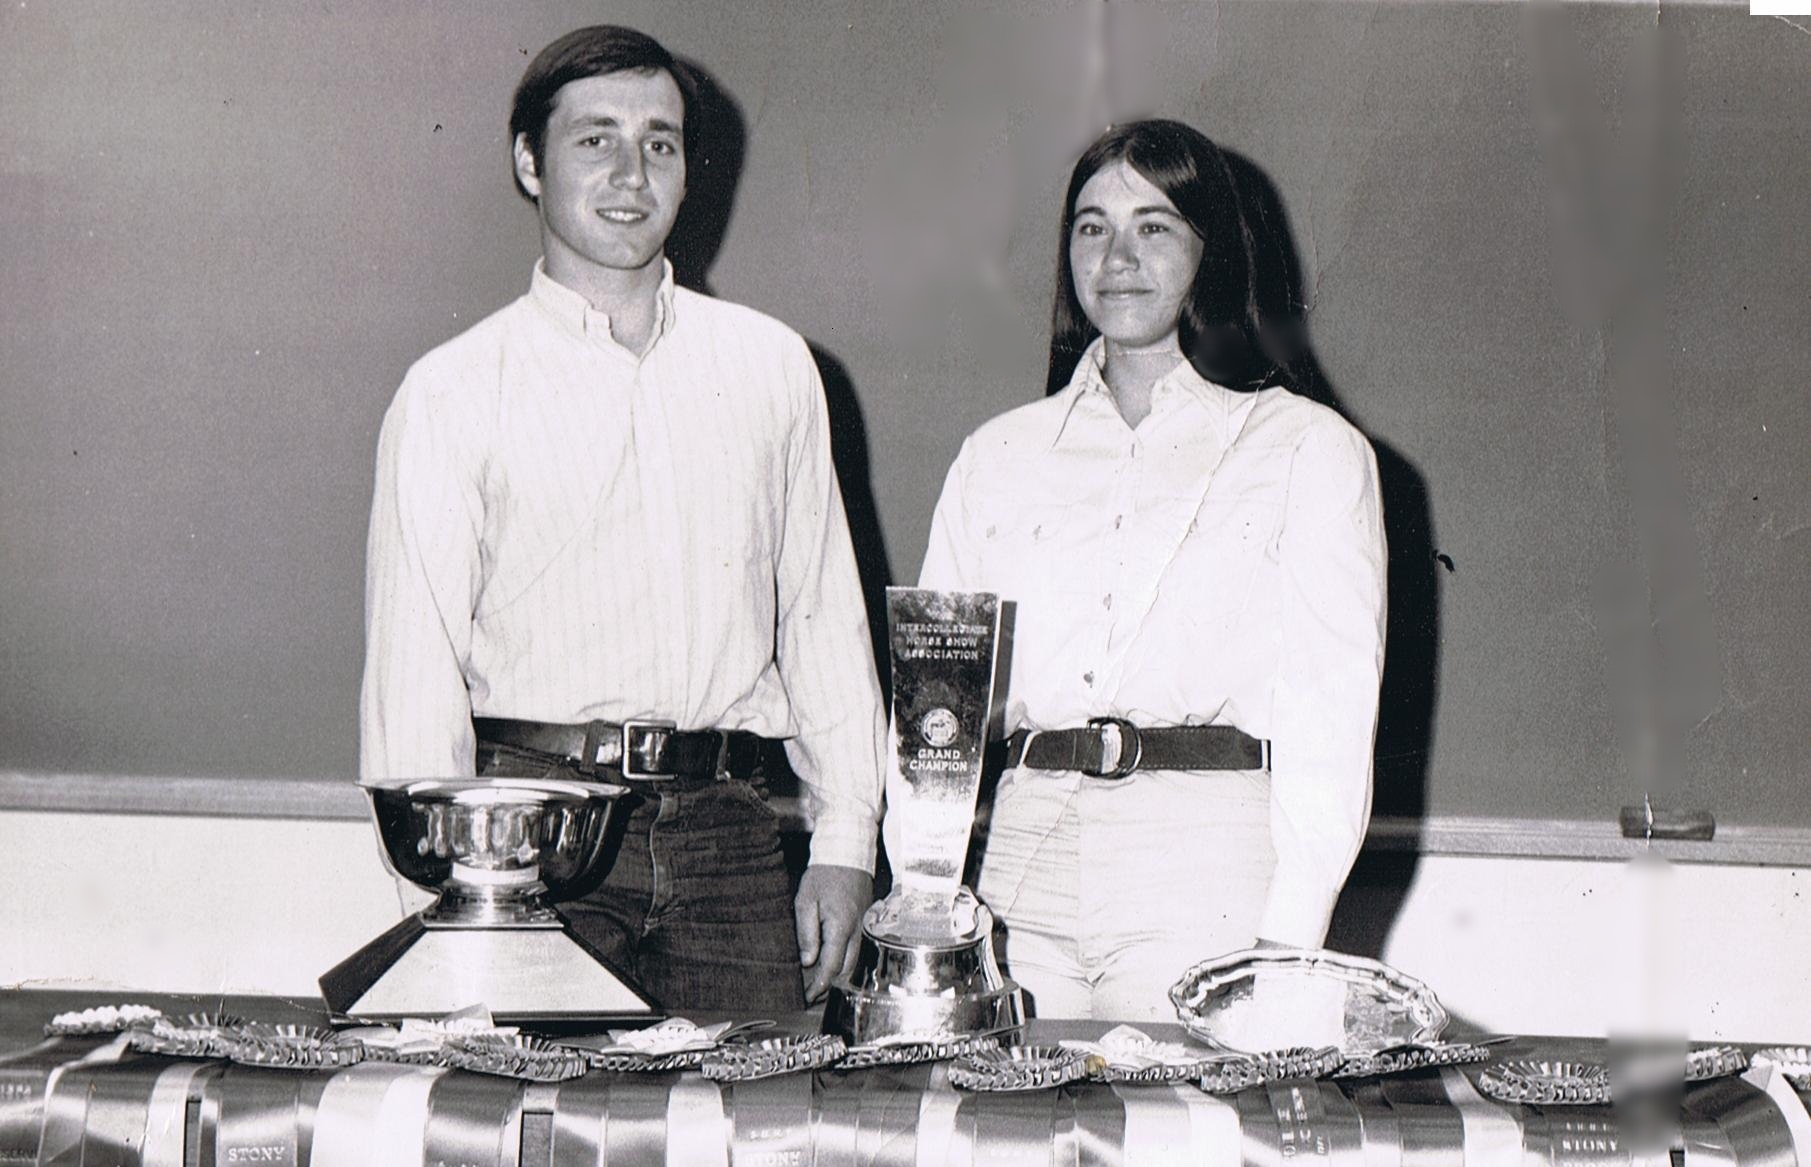 Duncan Peters and Anne Mather Brzezicki student coached the 1972 UConn IHSA team to the National Championship. Photo courtesy of UConn.